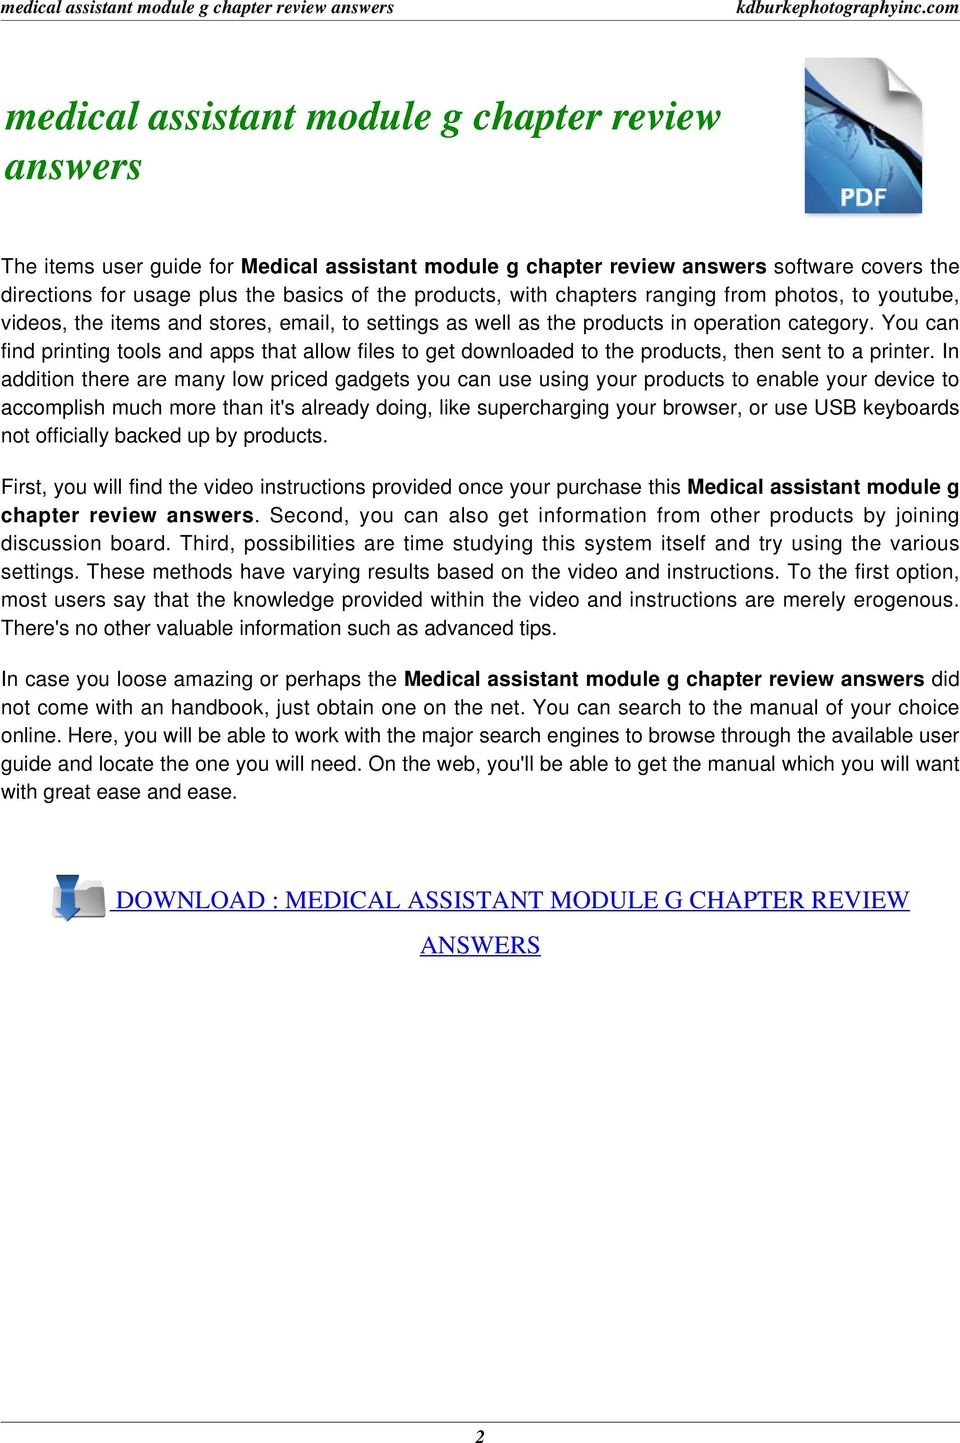 Medical assistant module g chapter review answers pdf download medical assistant module g chapter review answers 2 you can find printing tools and apps that allow files to get downloaded to the products fandeluxe